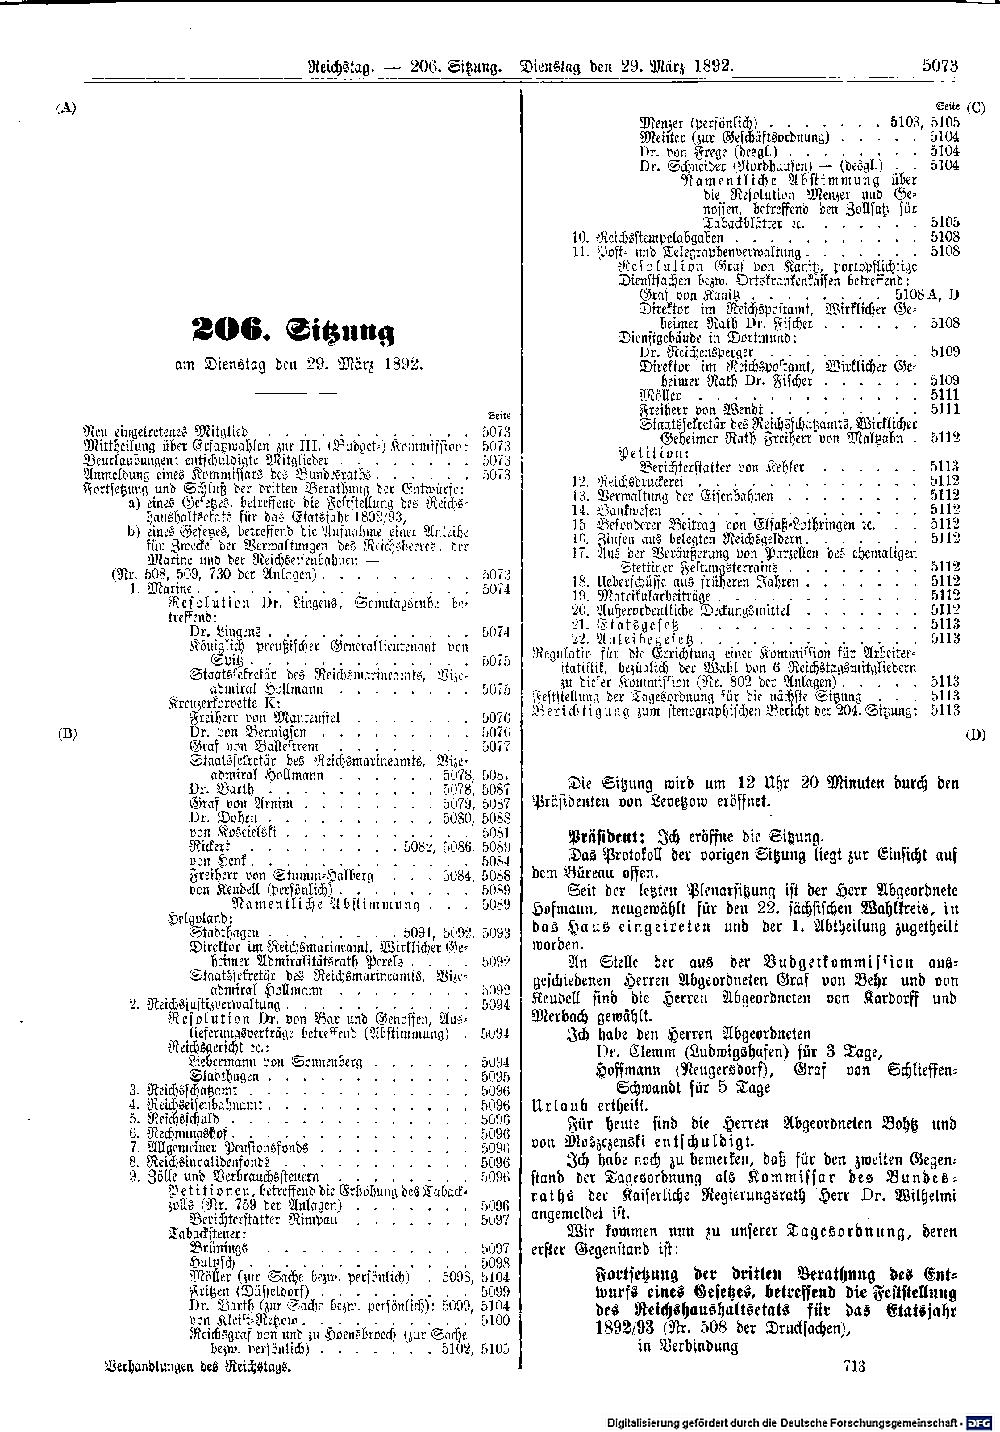 Scan of page 5073